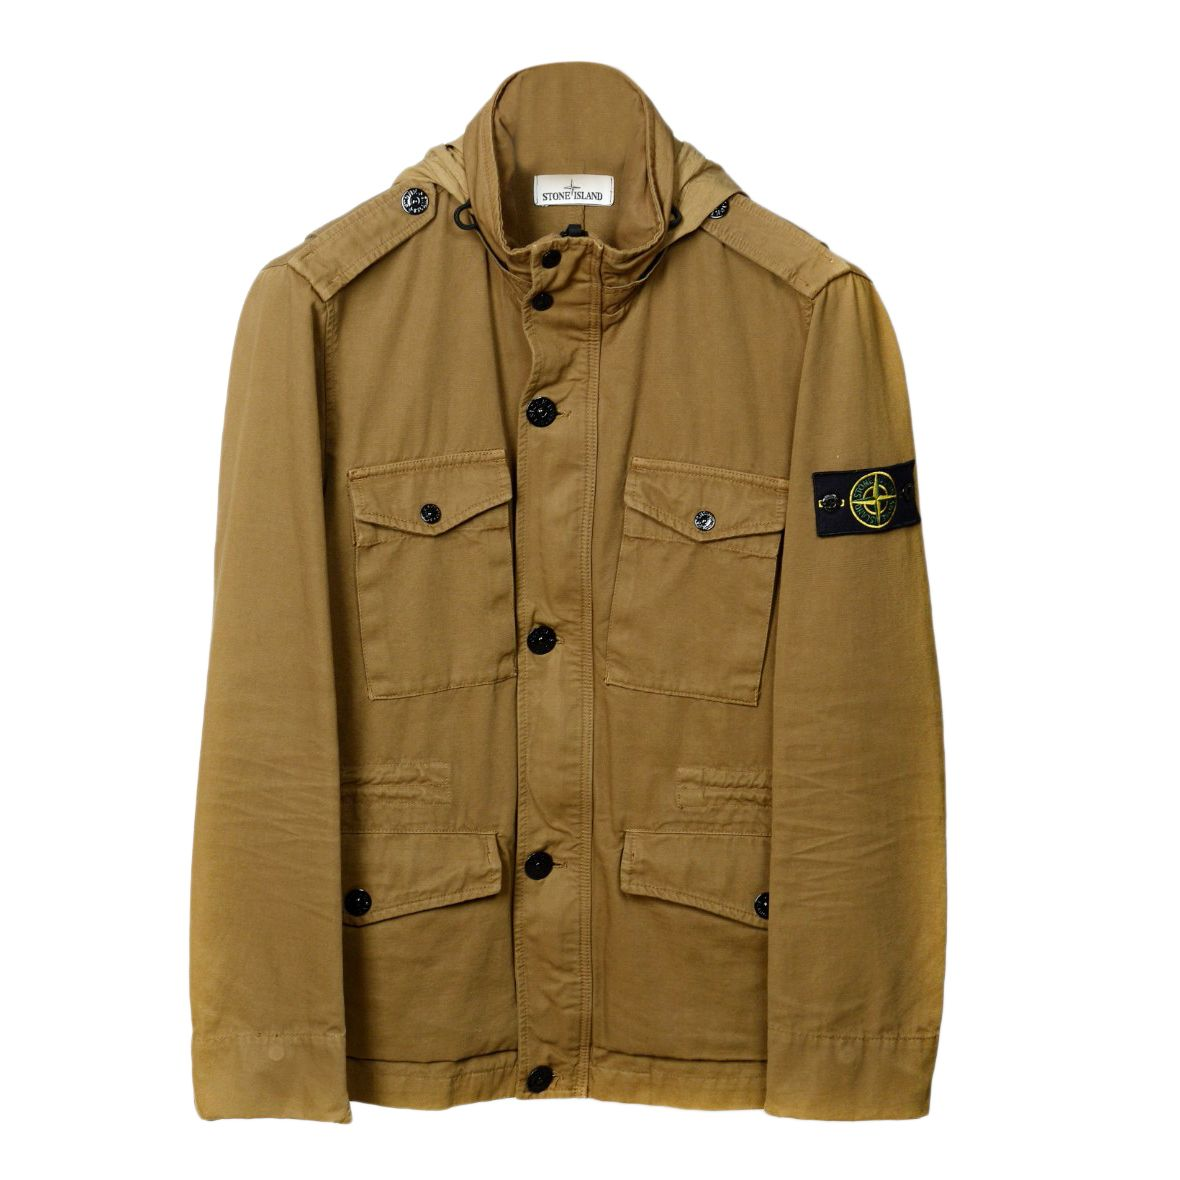 Stone Island Mens Military Field Jacket